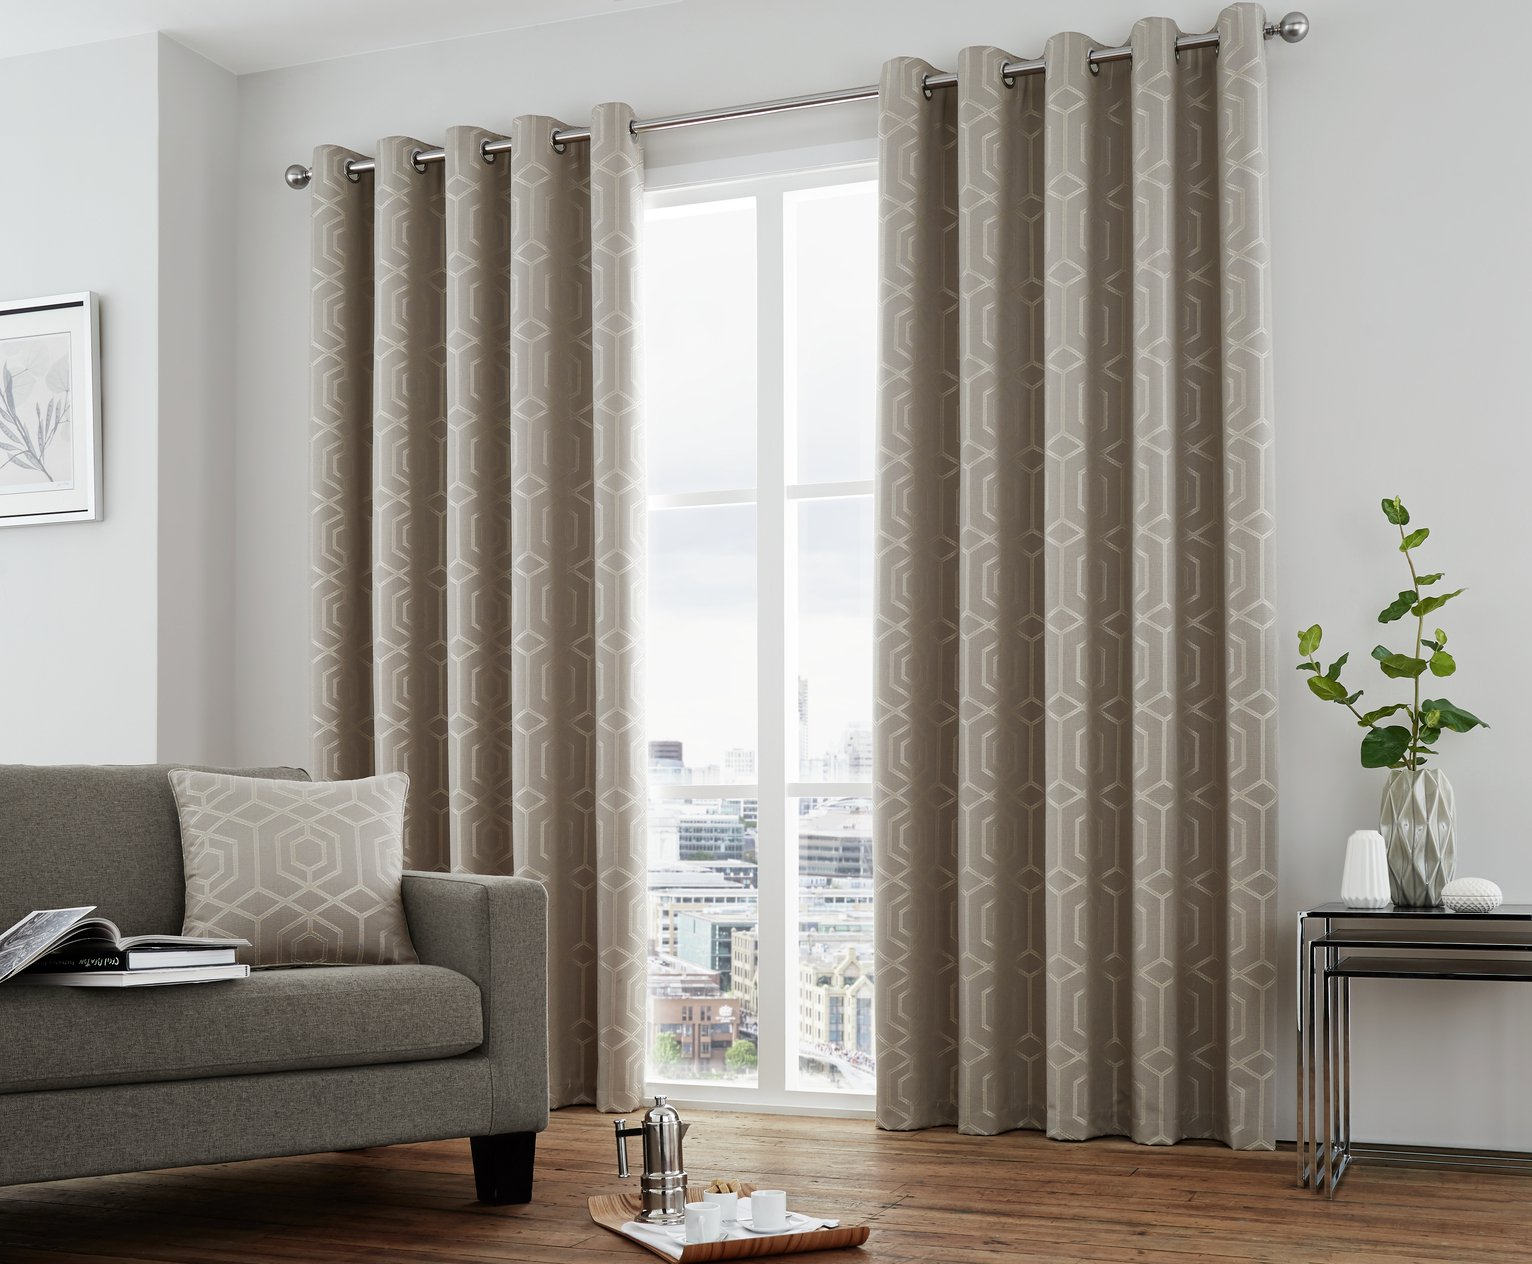 Image of Curtina Camberwell Eyelet Curtains - 168x137cm - Stone